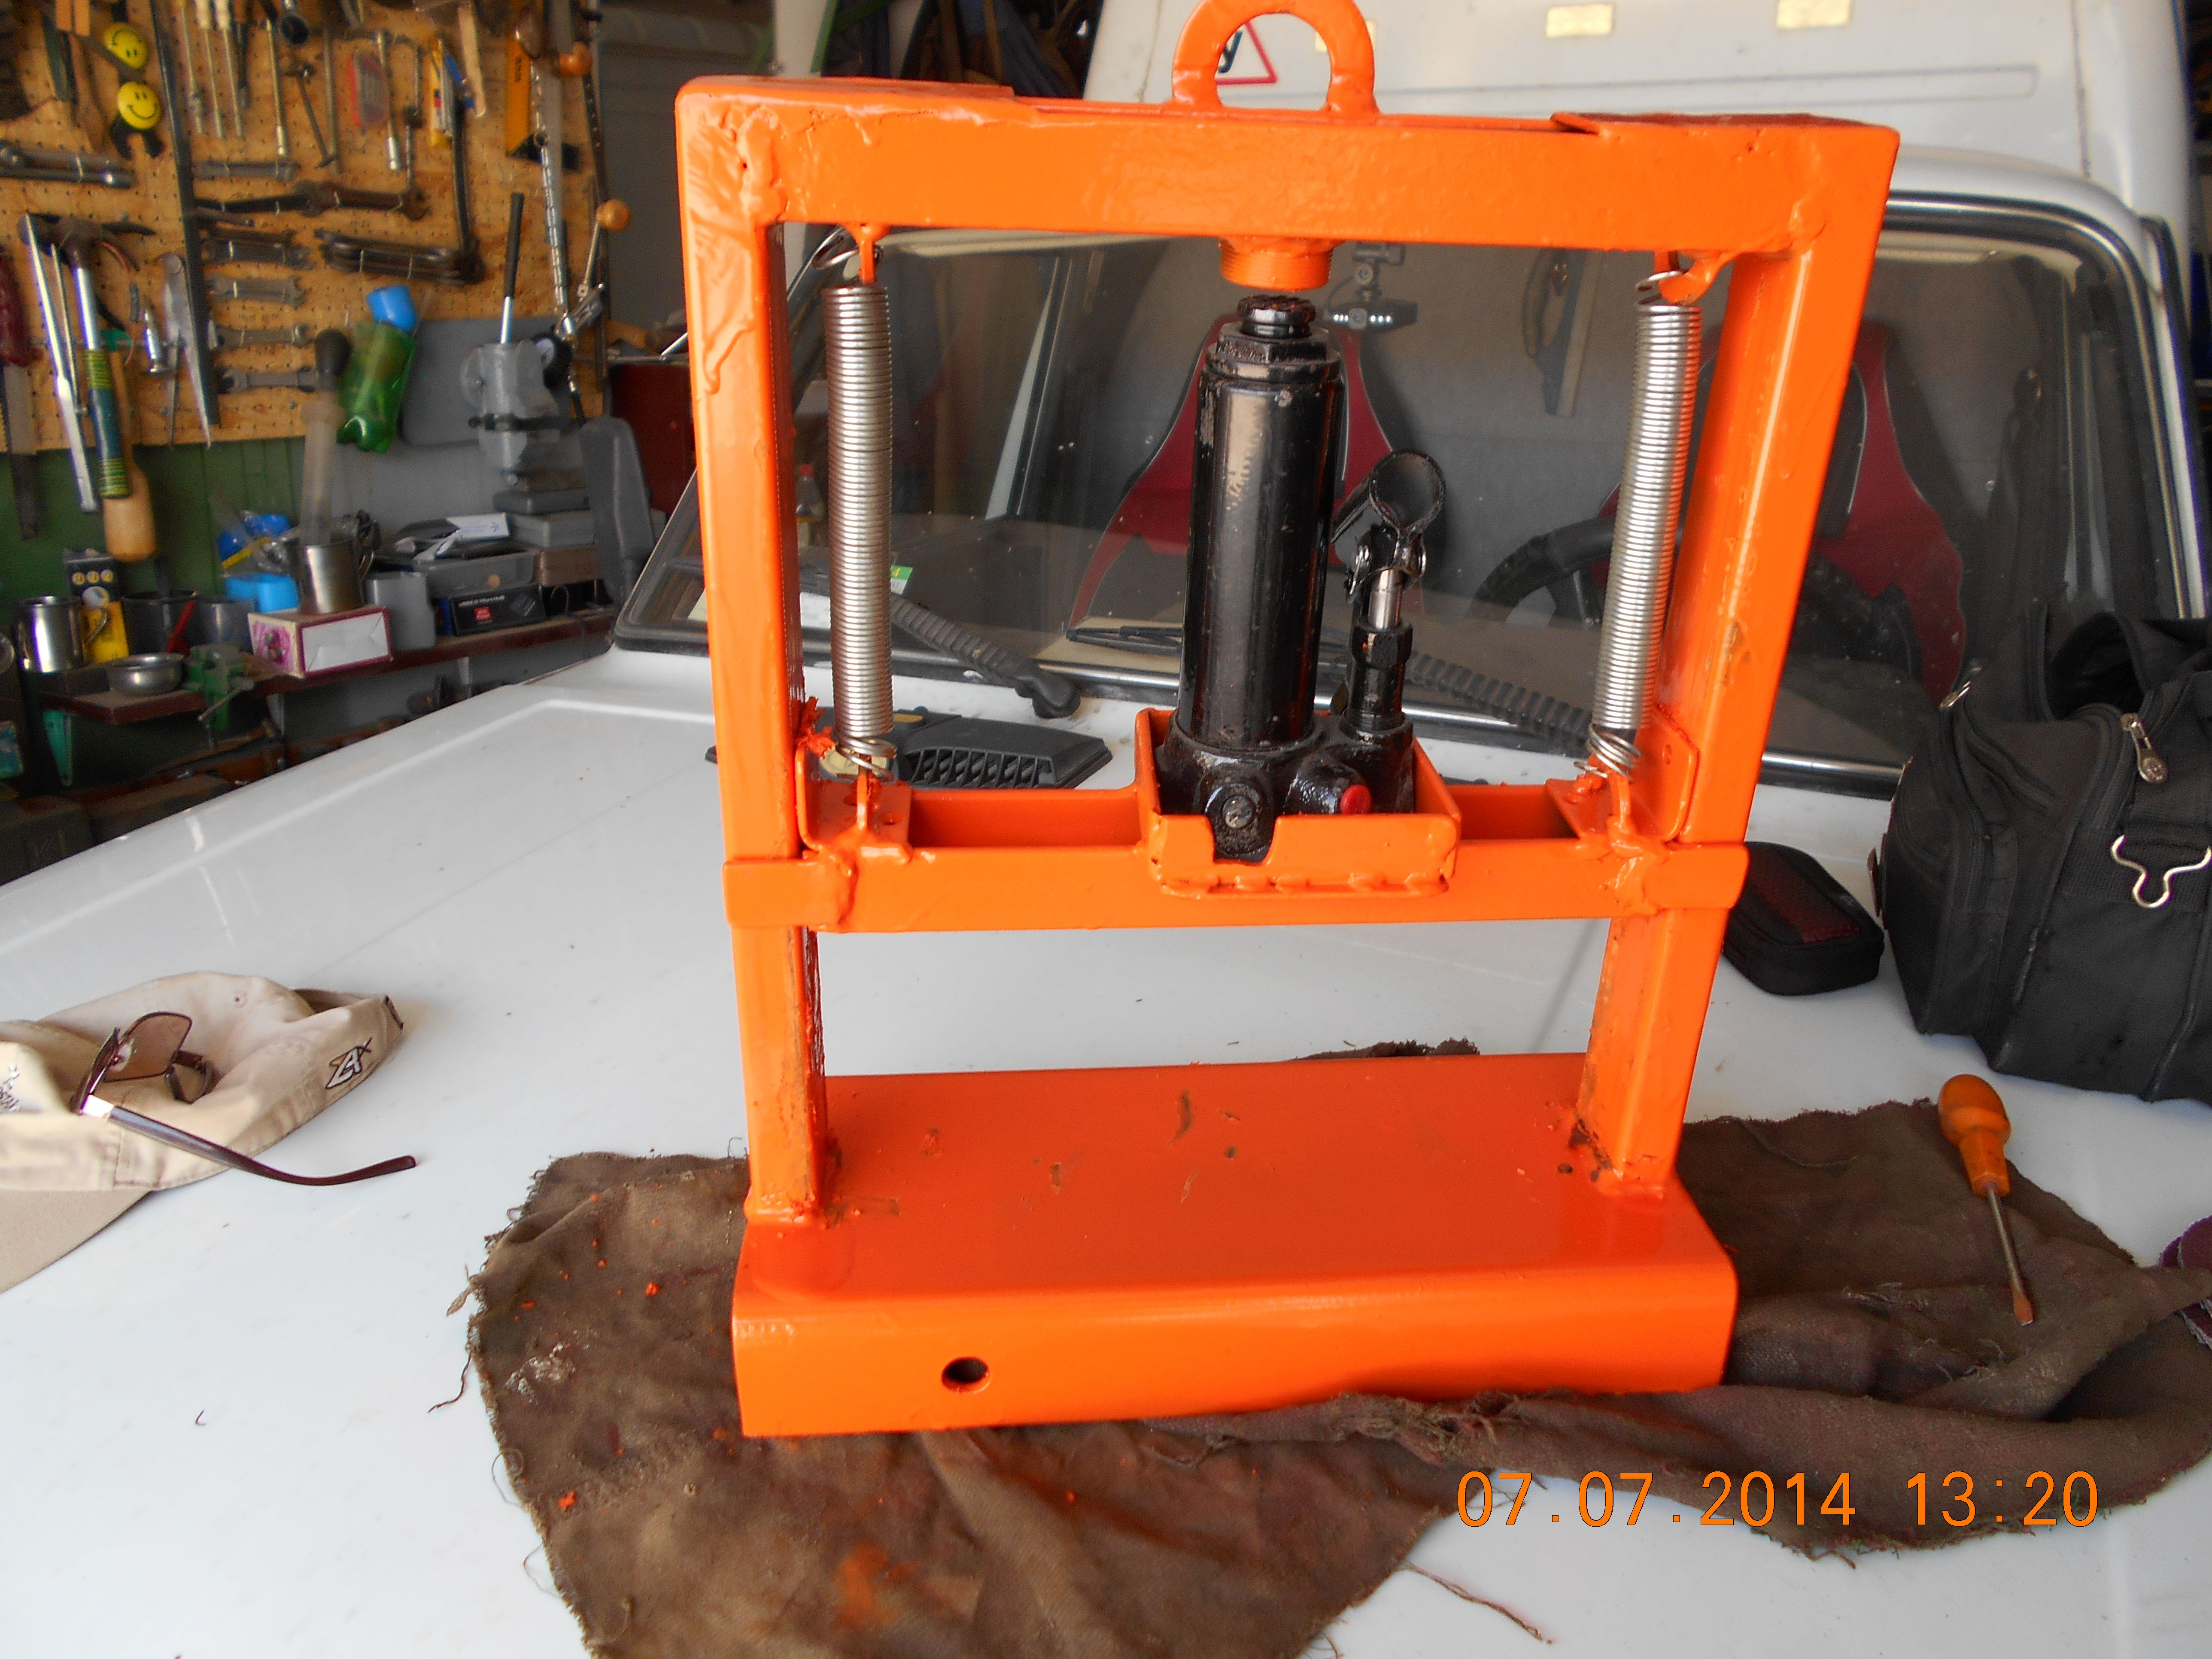 Smallsize press force of 2 tons on the basis of the jack